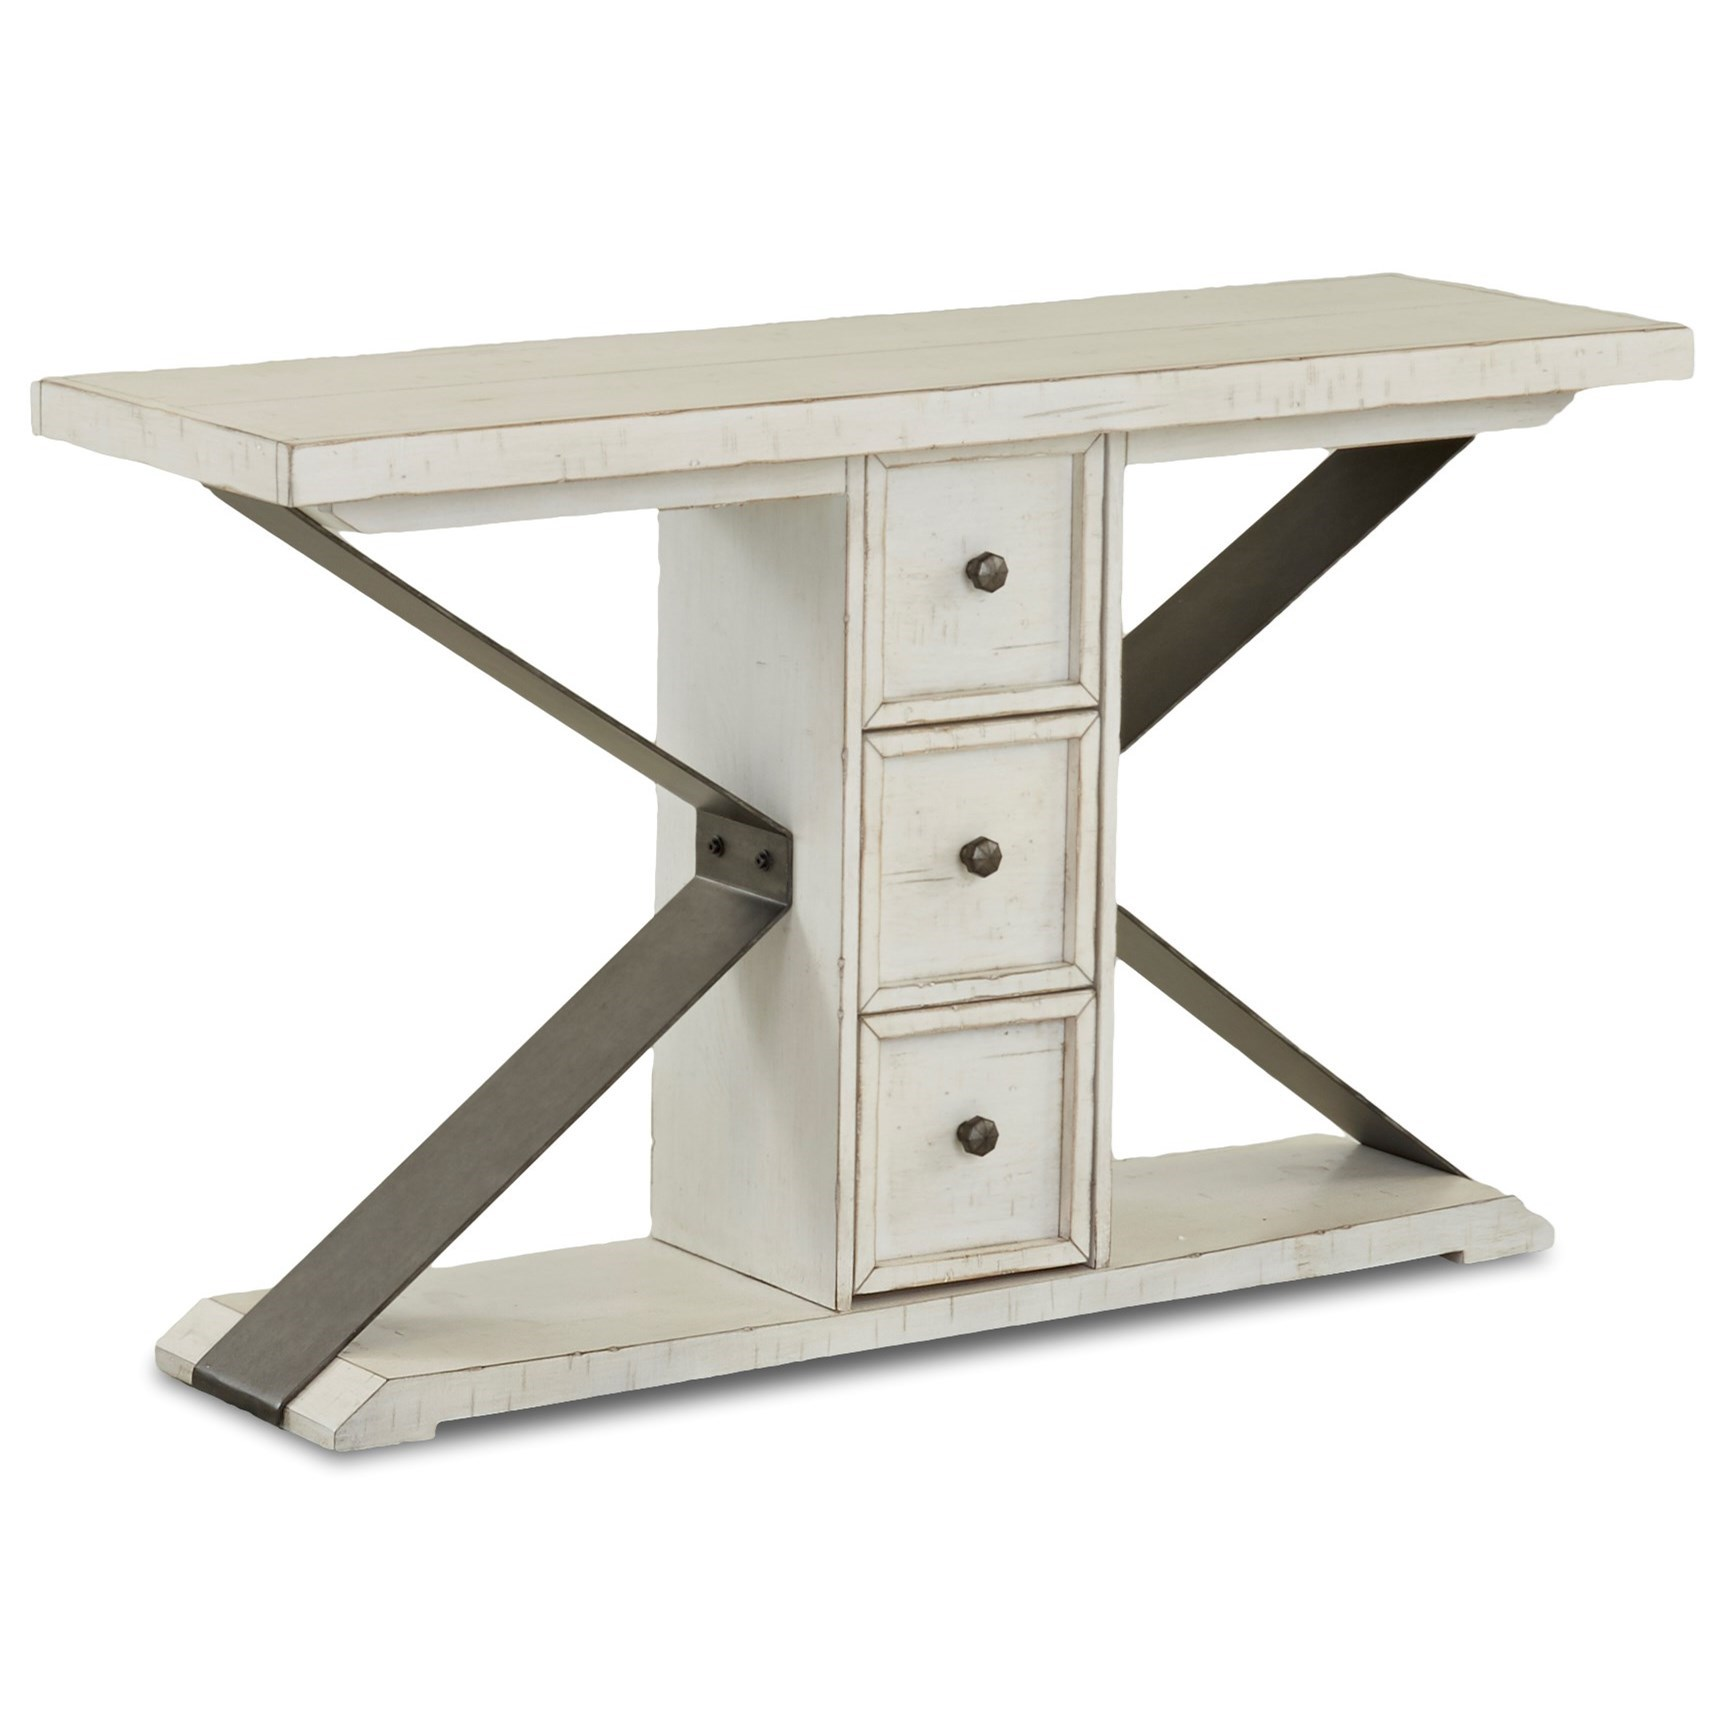 Coming Home Friendship Sofa Table by Trisha Yearwood Home Collection by Klaussner at Johnny Janosik